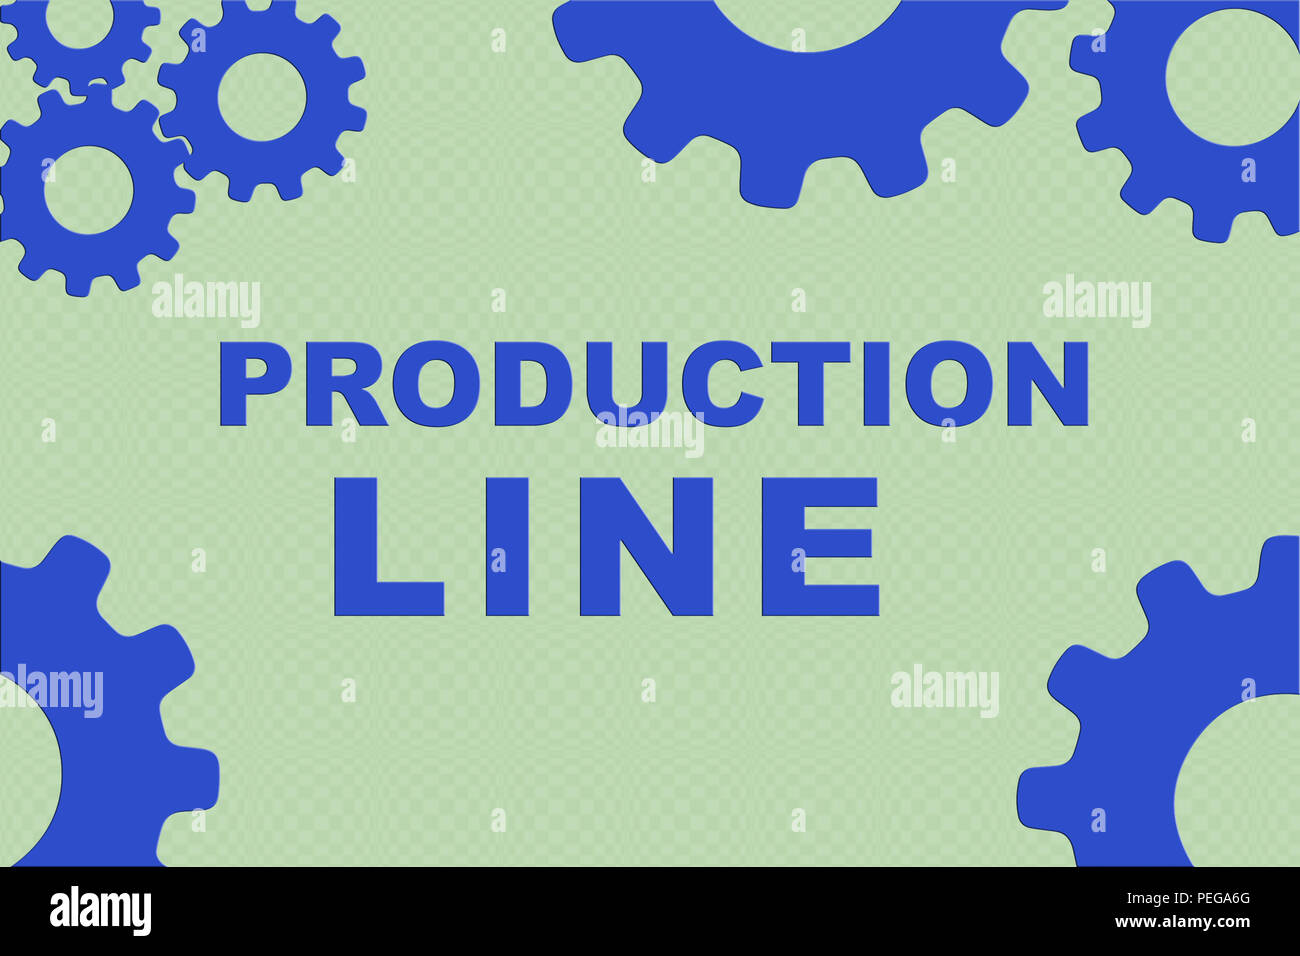 PRODUCTION LINE concept sign concept illustration with blue gear wheel figures on pale green background - Stock Image